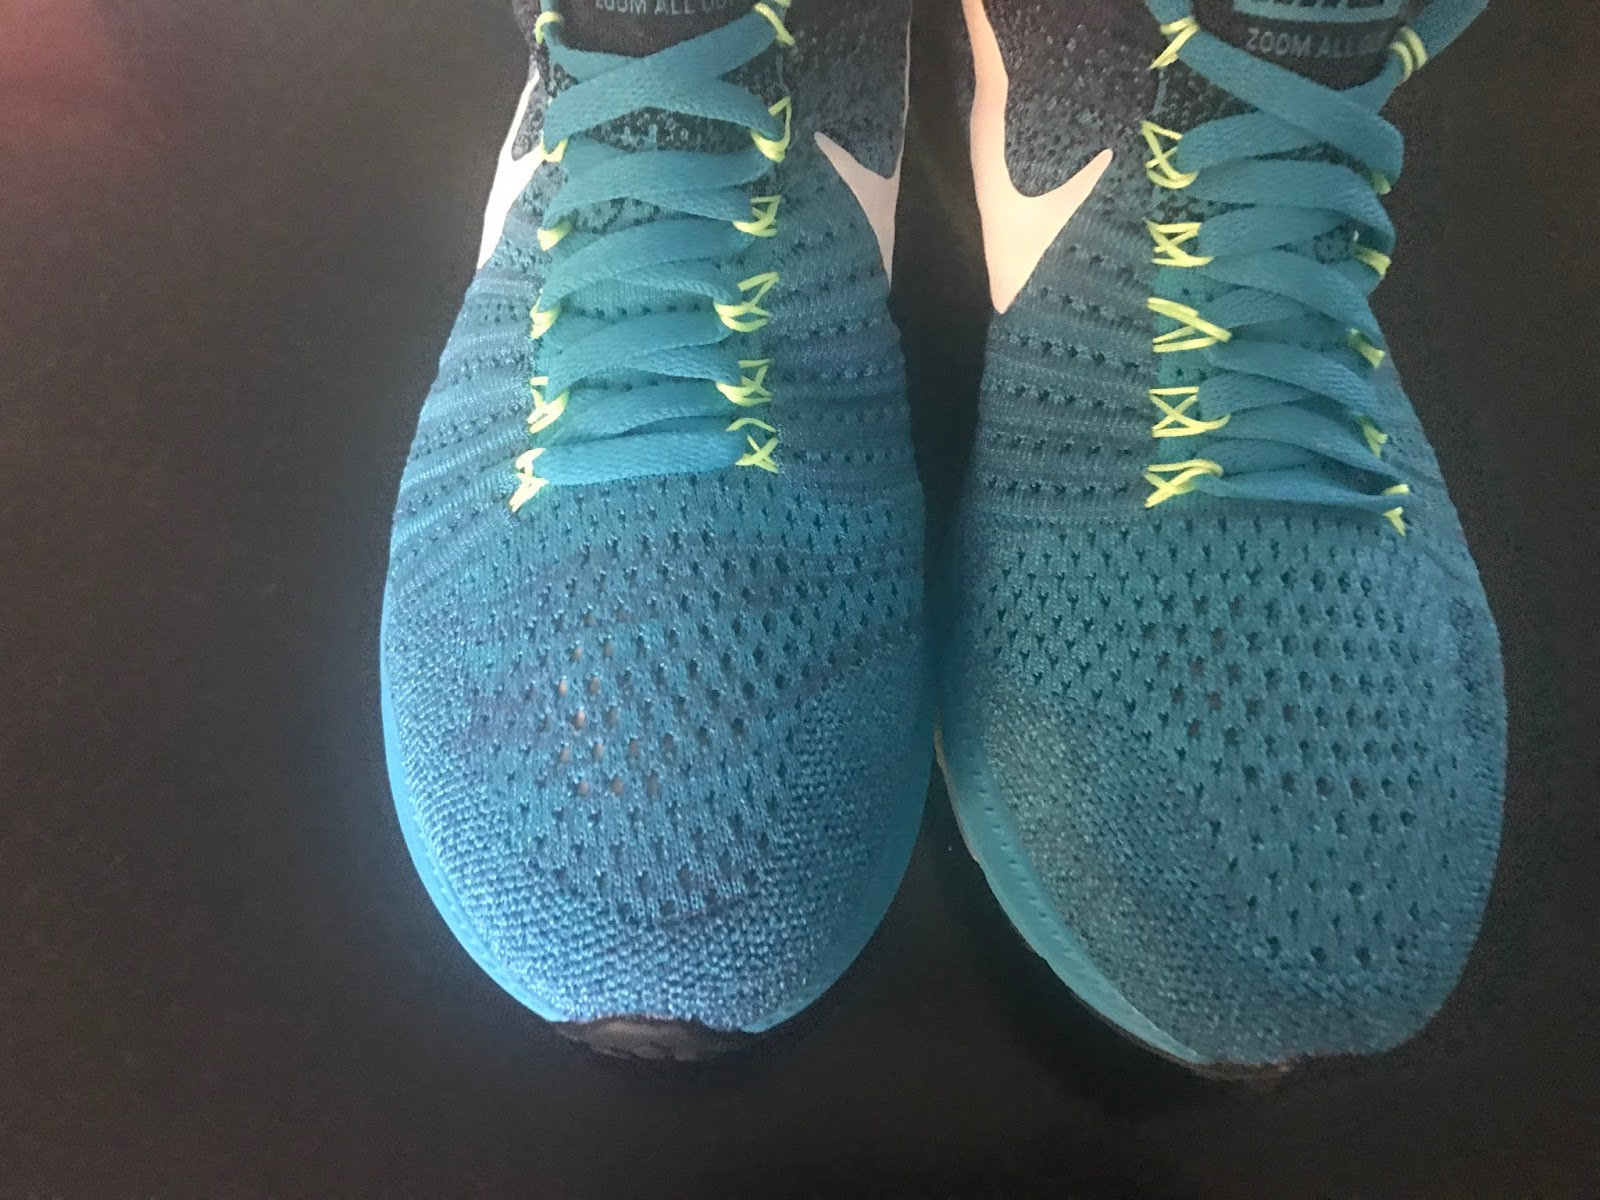 57f69522036e The upper is Nike s Flyknit with Flywire cables integrated to the laces.  They fit true to size with decent width but have relatively low volume over  the ...